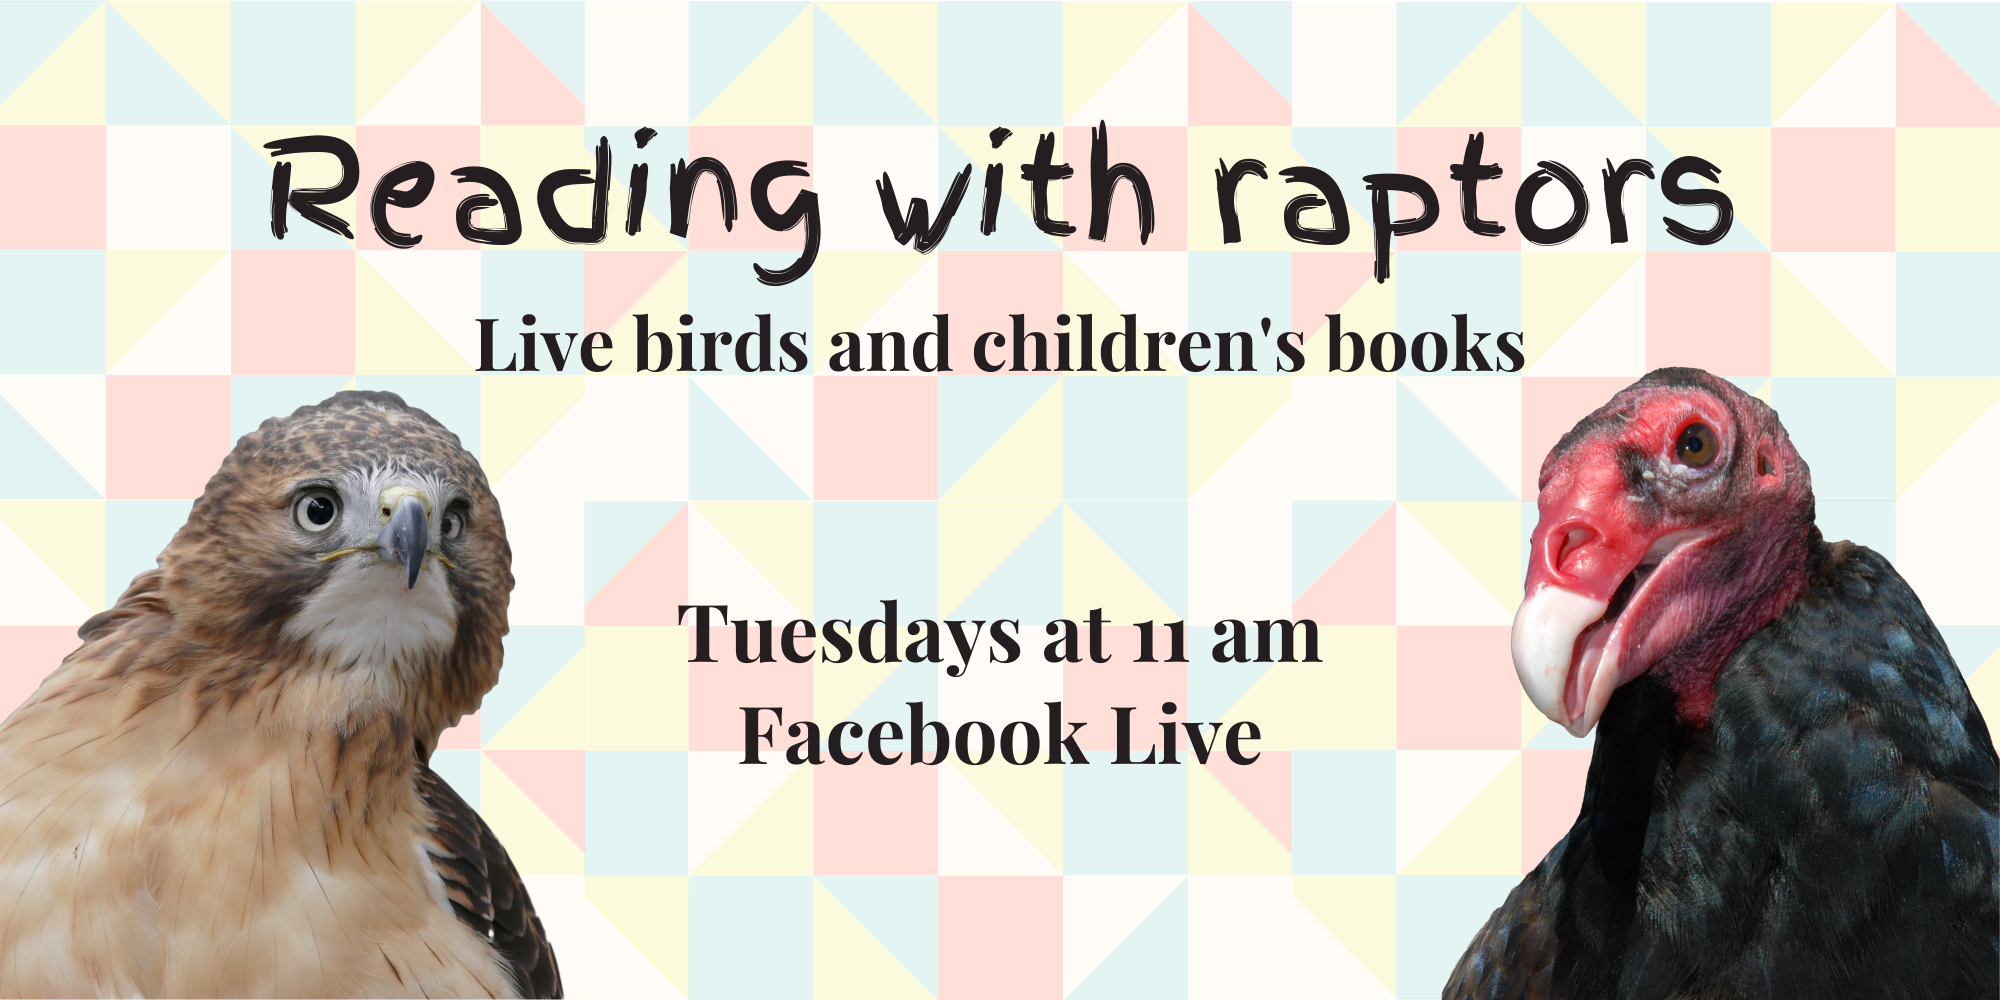 Facebook live event Tuesdays at 11